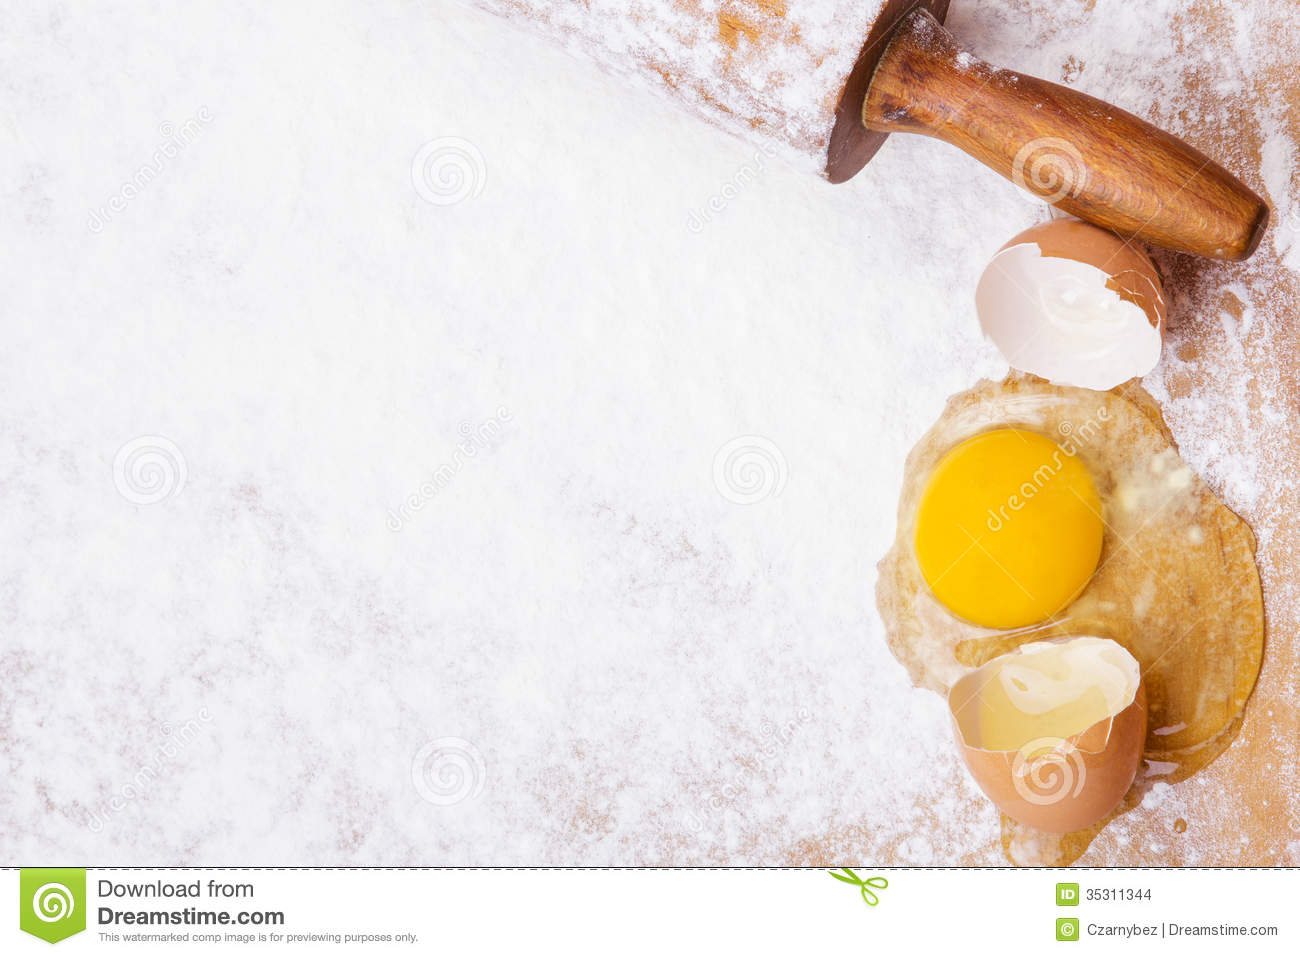 Baking Background Stock Images - Image: 35311344